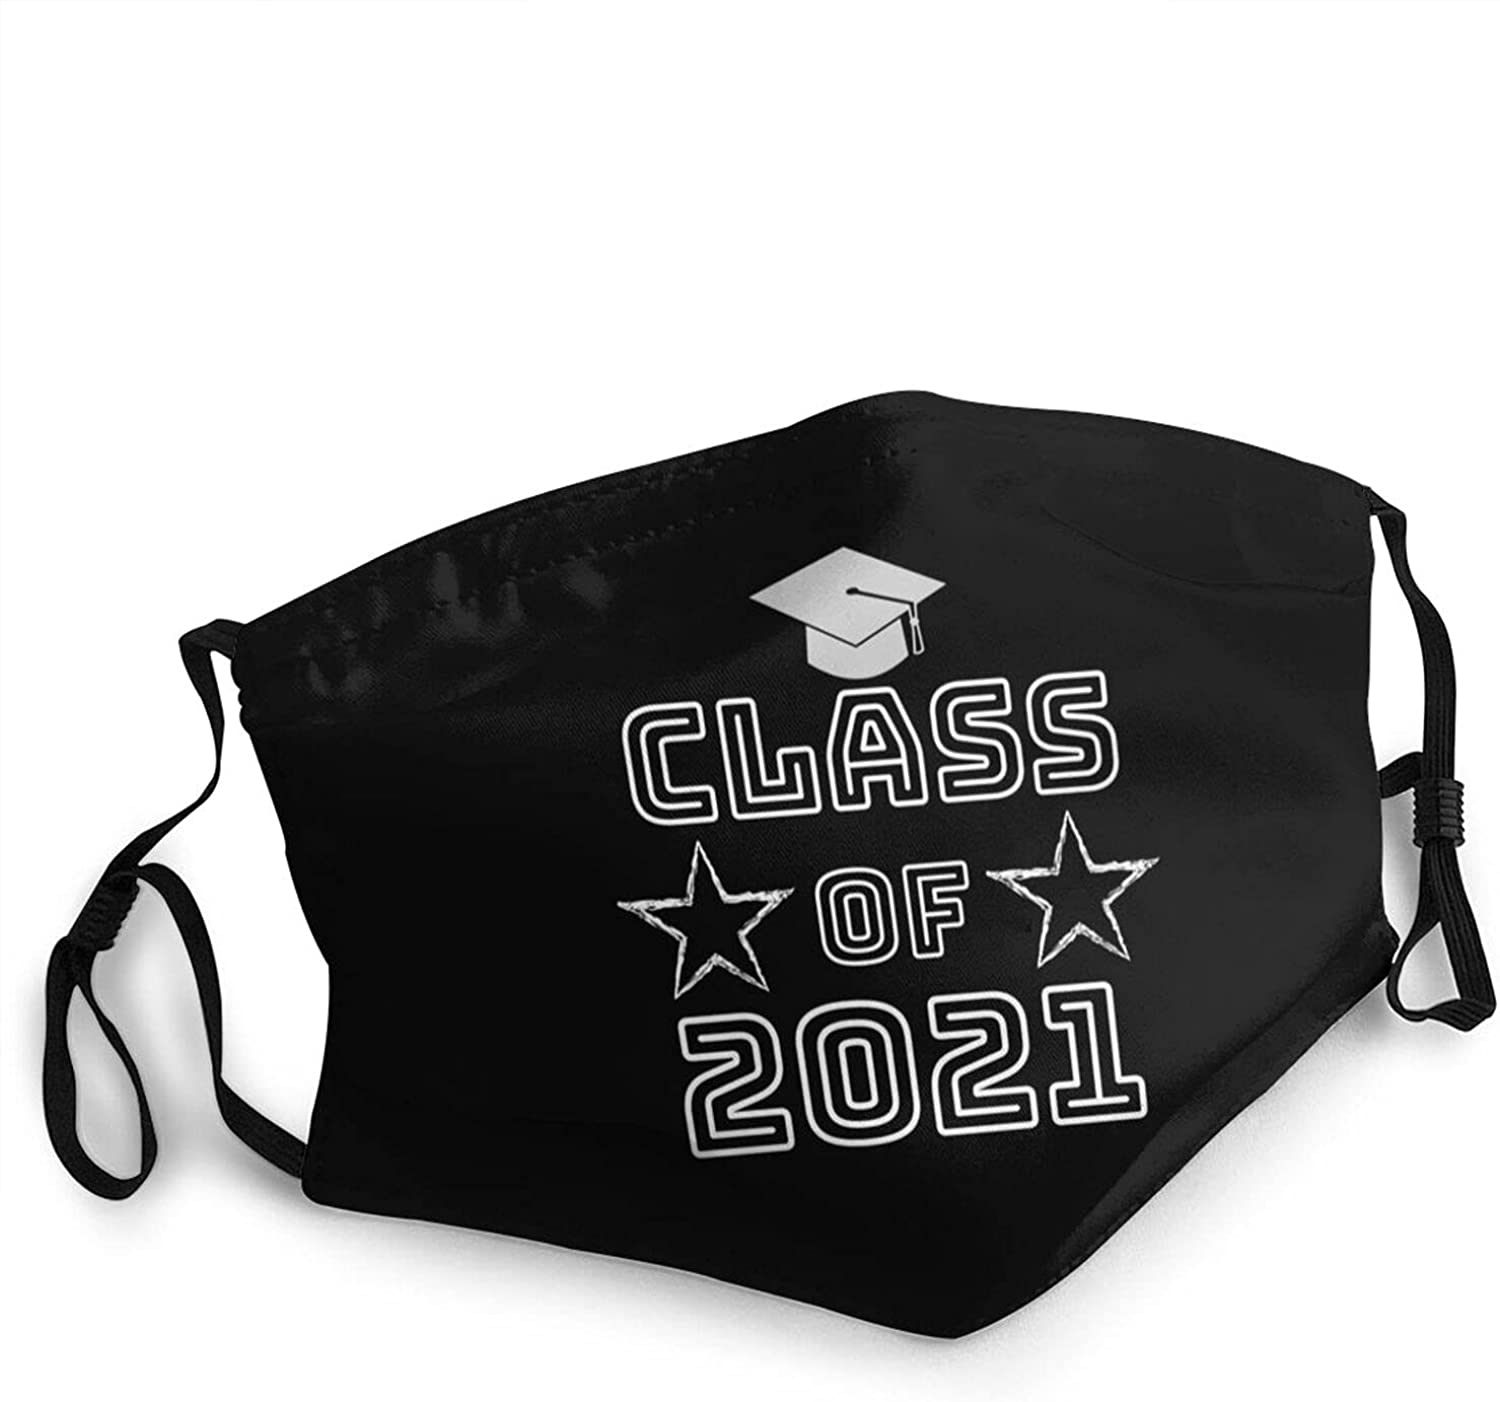 Class of 2021 Printed Design Face Mask,Men's Women's Outdoor Face Mask Reusable and Washable Adjustable Balaclavas